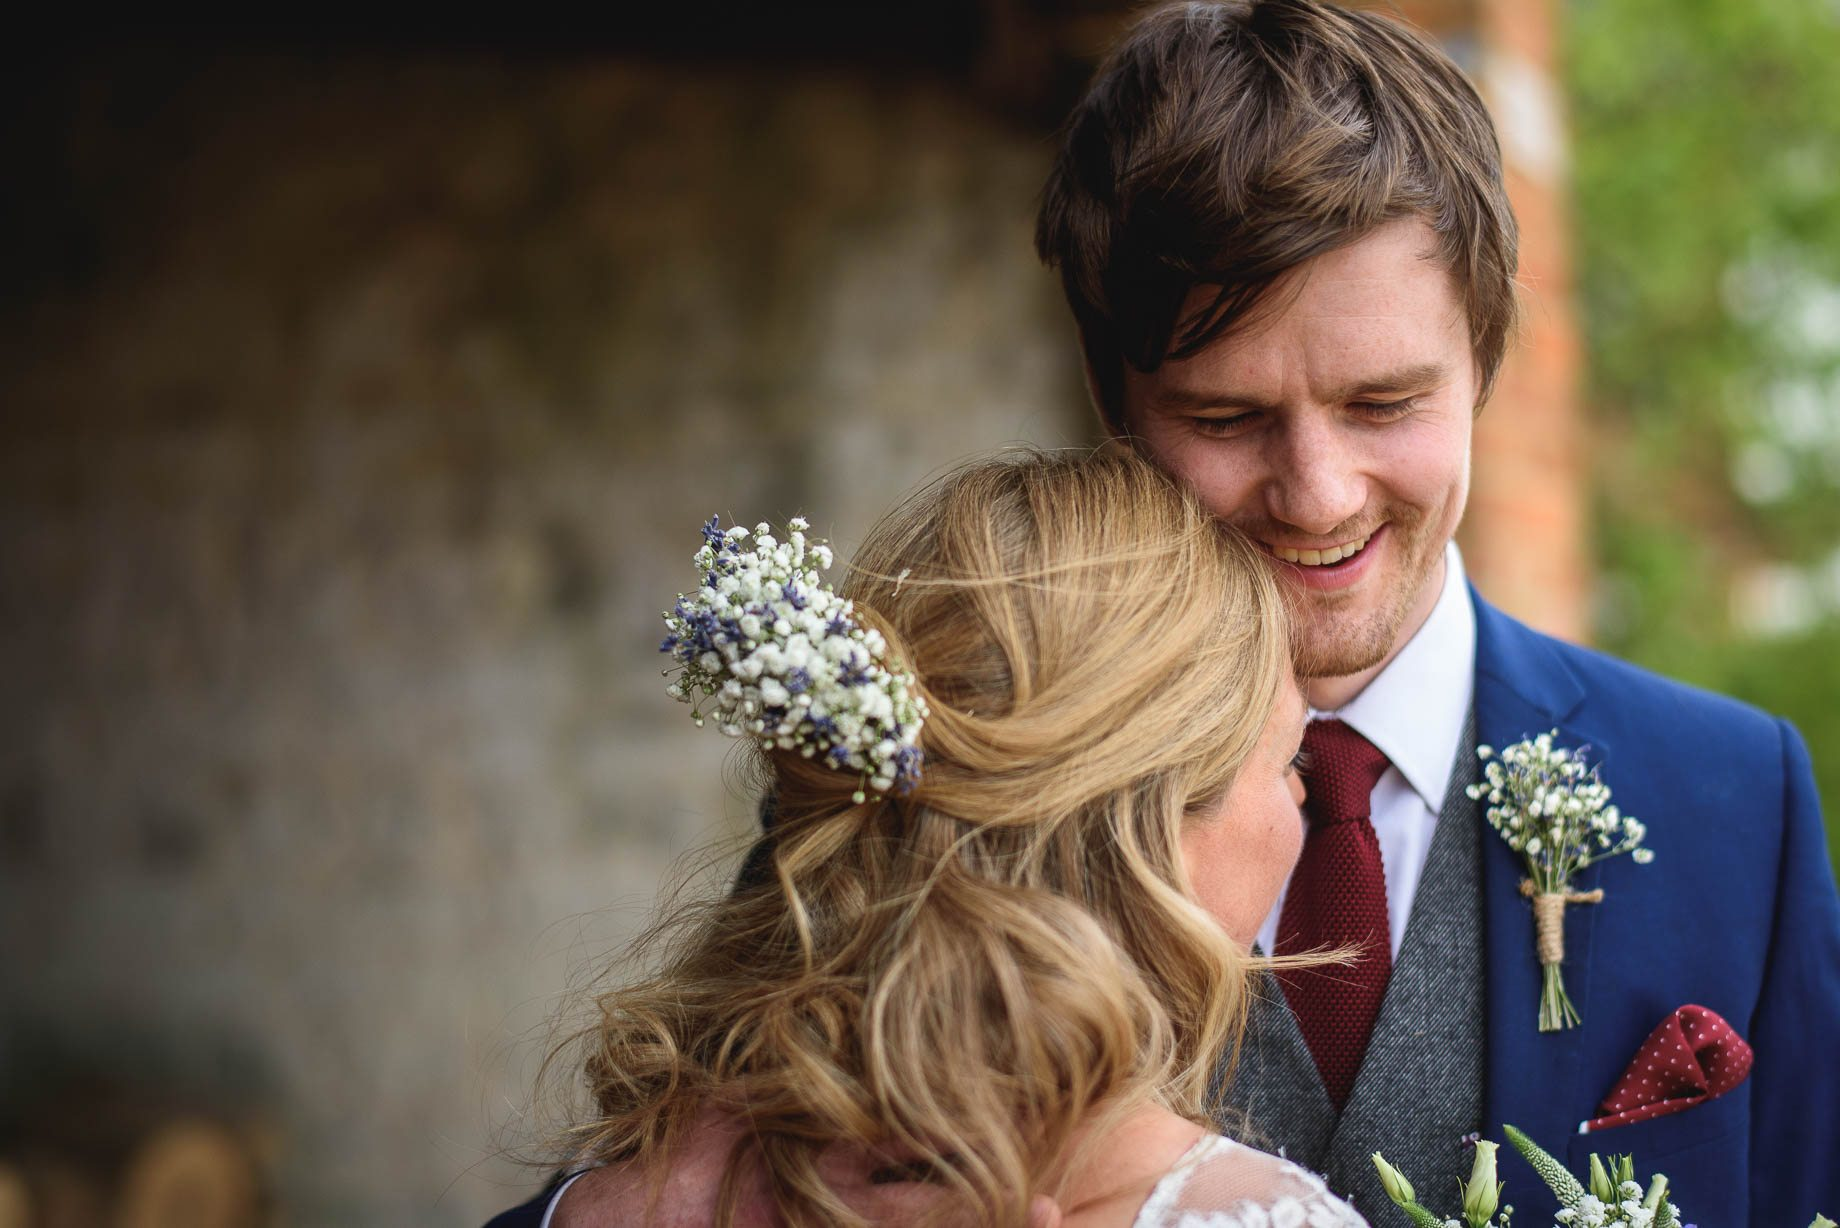 Bury Court Barn wedding photography by Guy Collier - Heather and Pat (90 of 170)